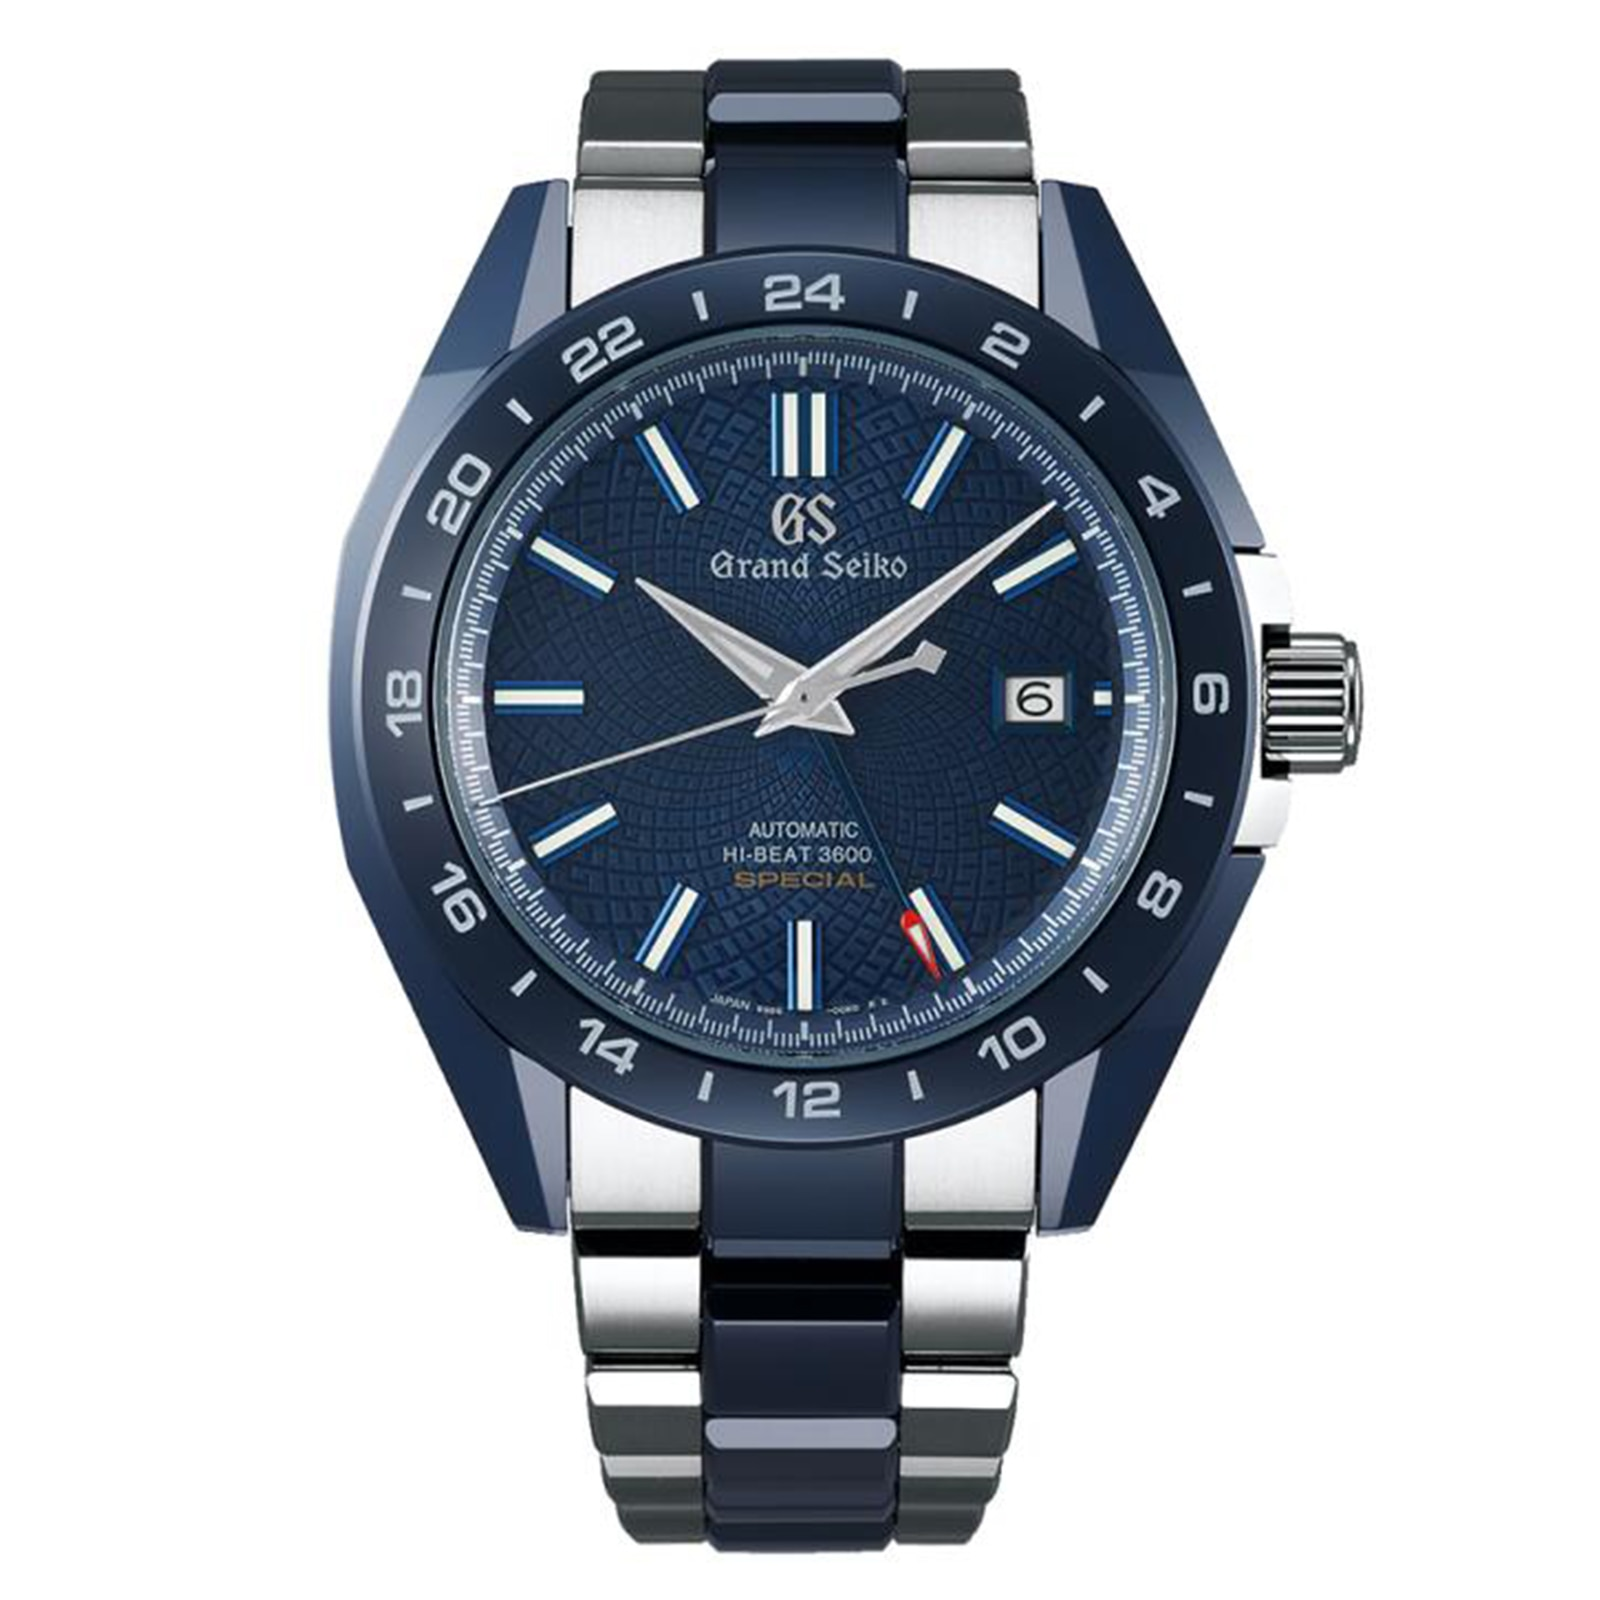 Grand Seiko Hi Beat 36000 GMT Limited Edition SBGJ229